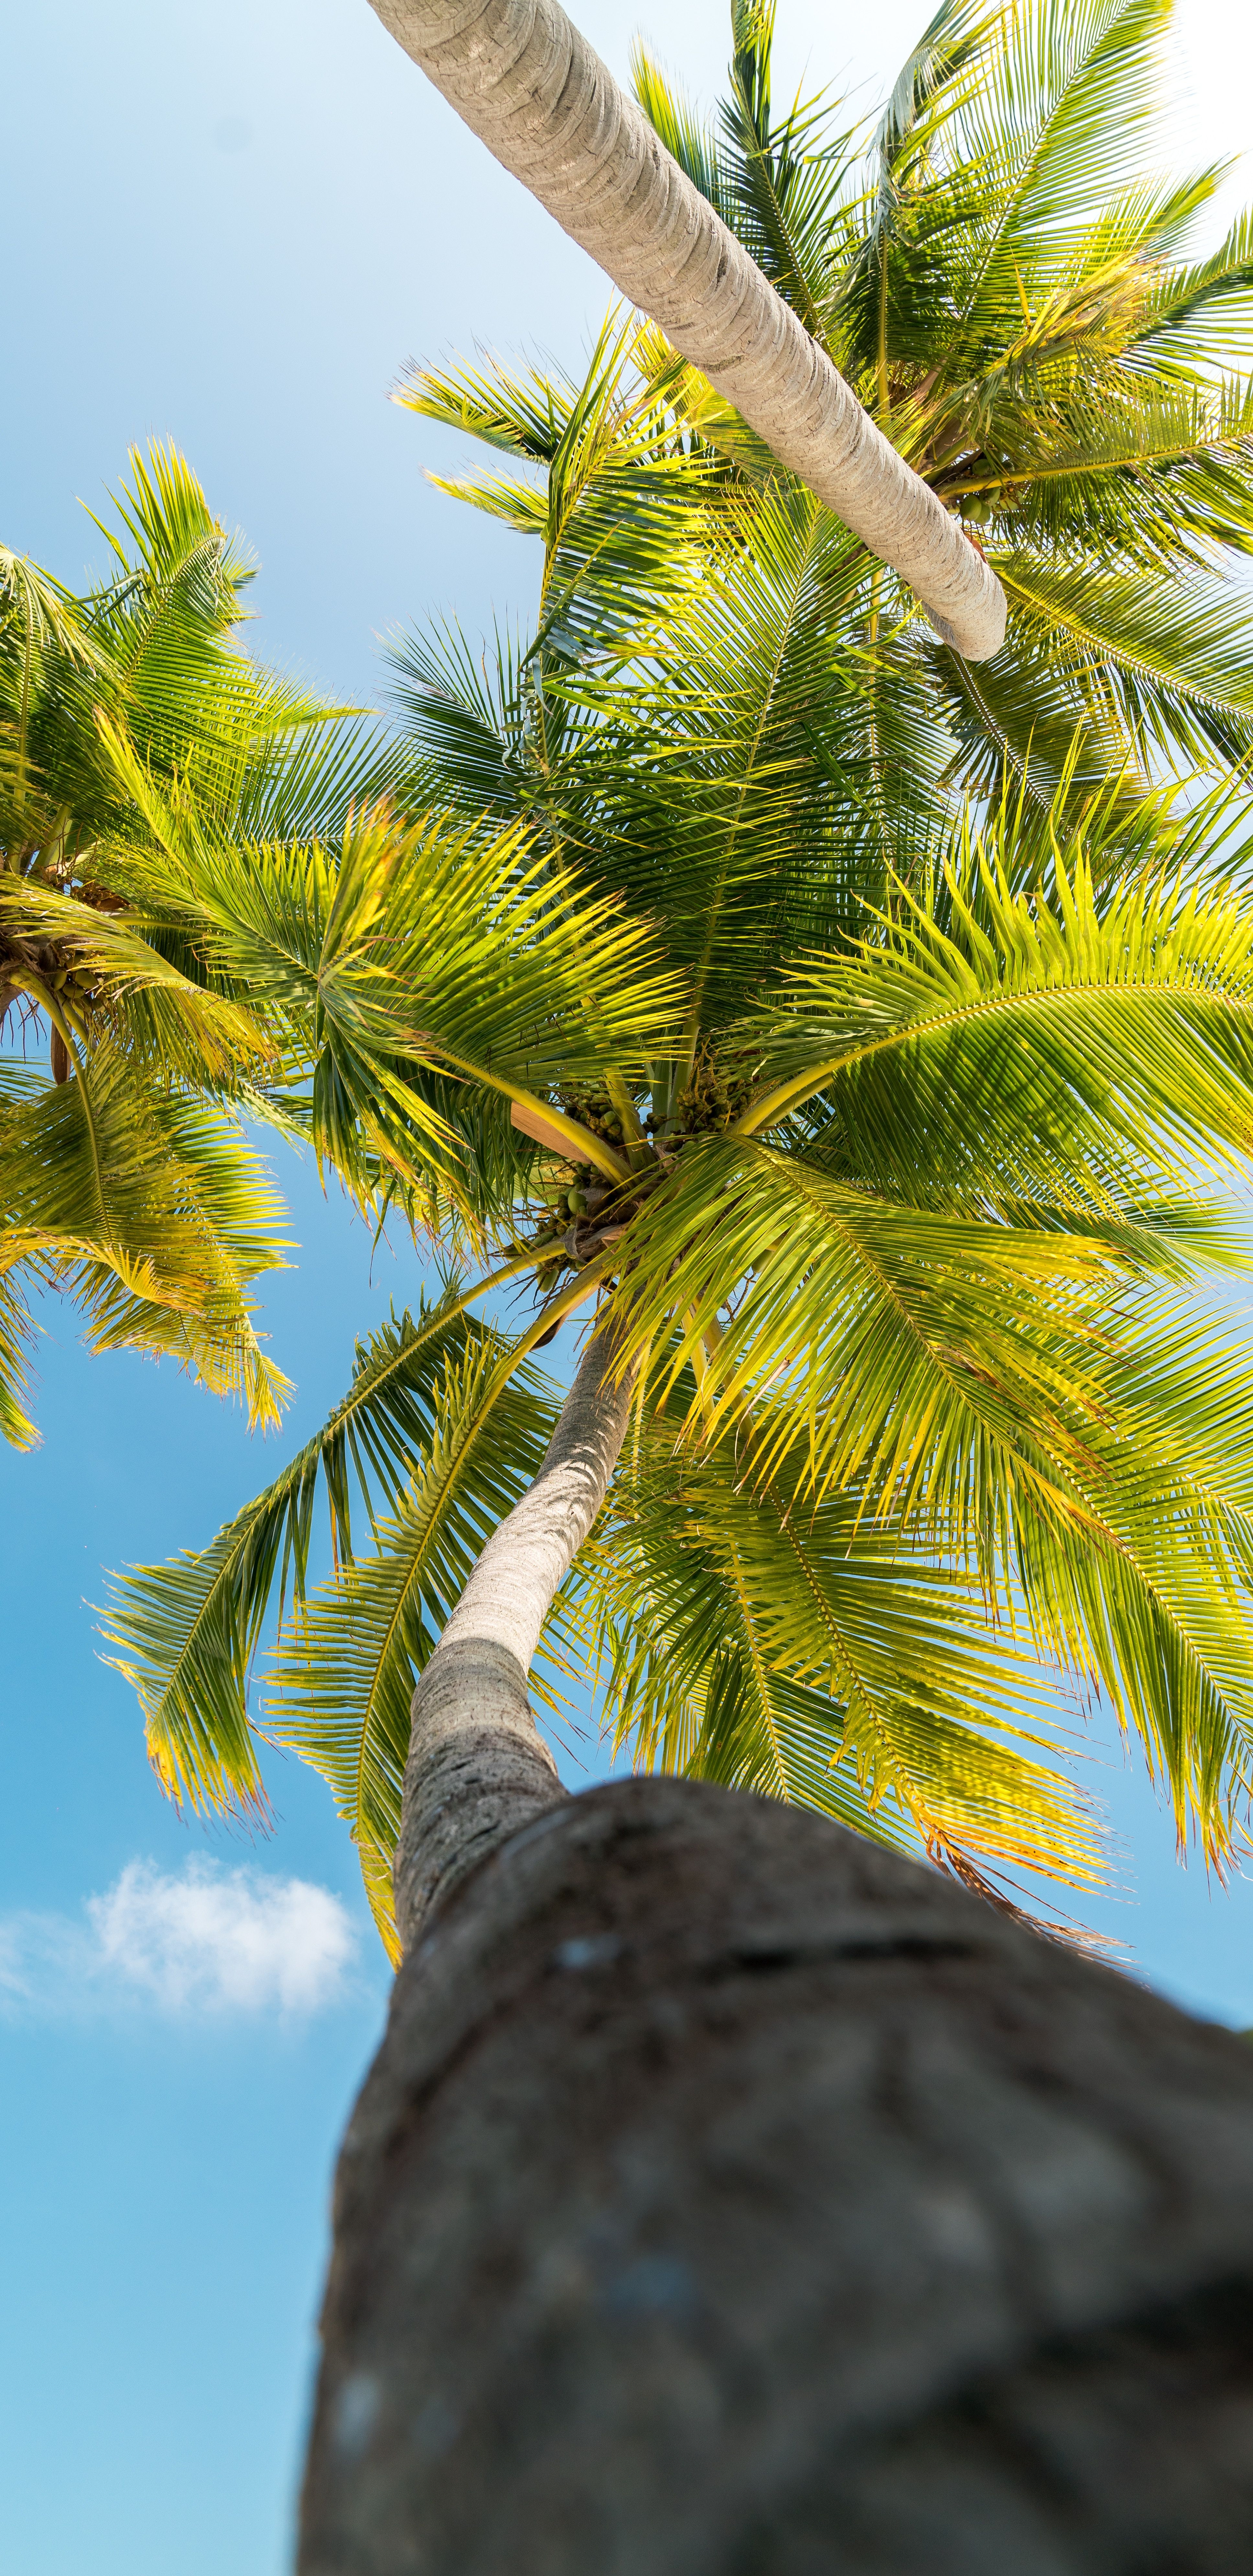 Tropical Wallpaper For Iphone X Tropical Wallpaper Palm Trees Wallpaper Leaf Photography